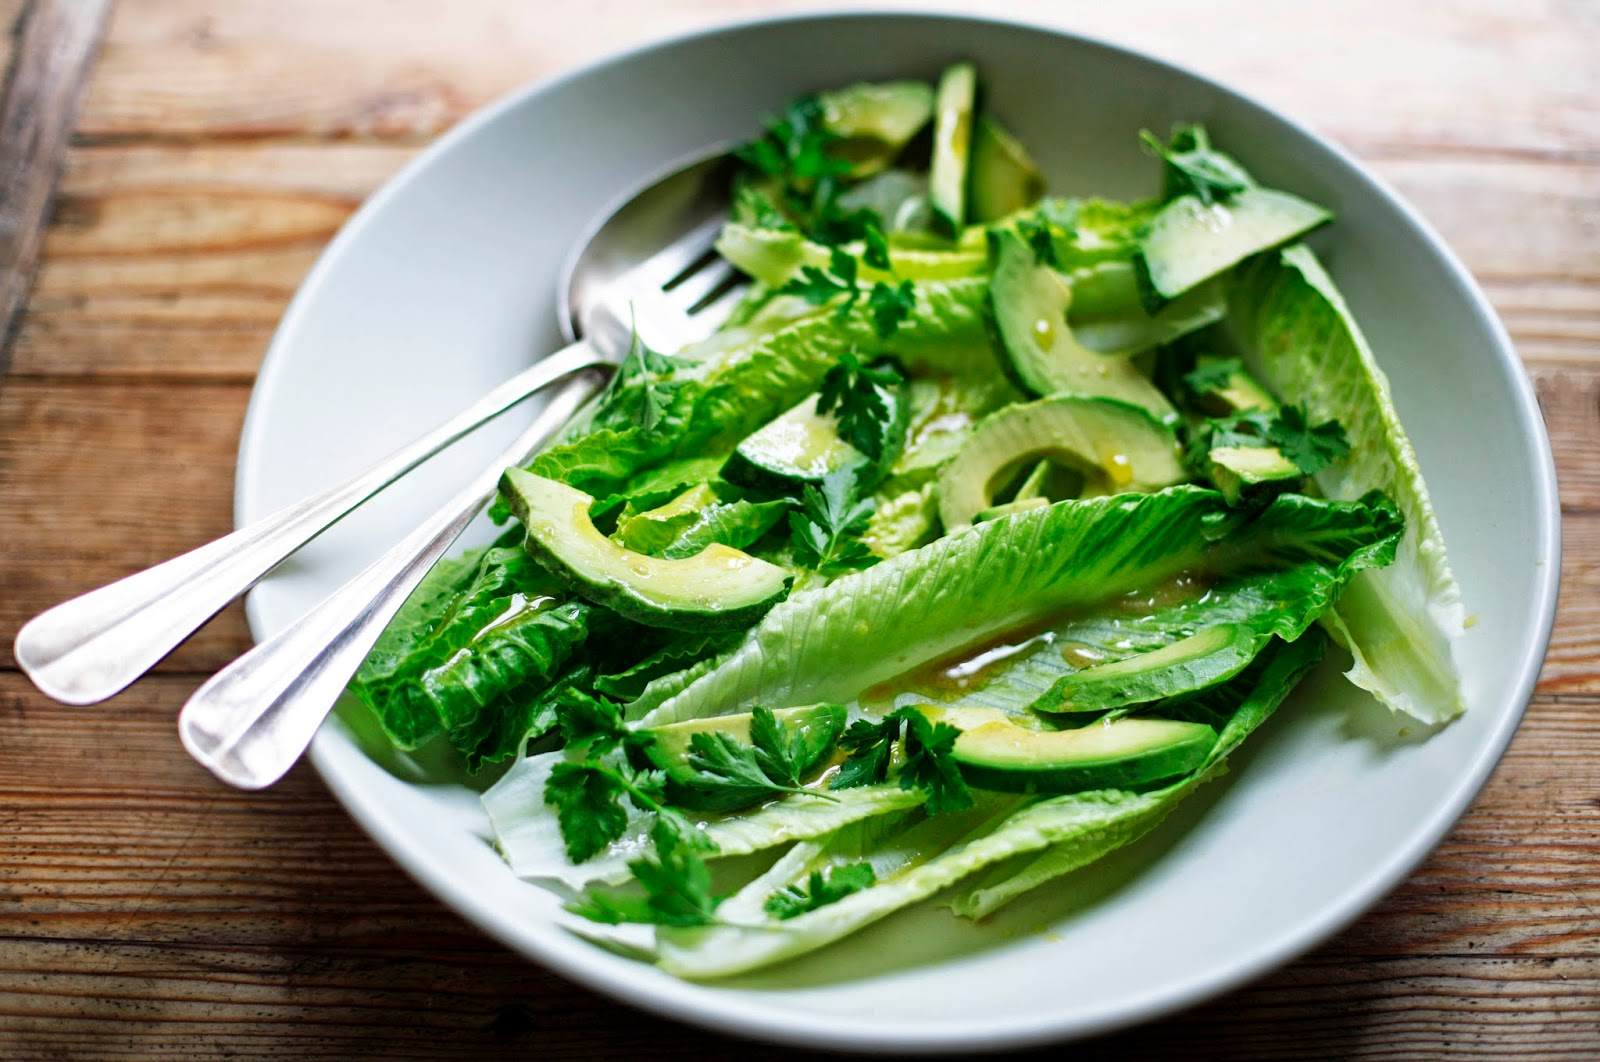 https://food52.com/blog/10327-romaine-and-avocado-salad-with-anchovy-garlic-vinaigrette